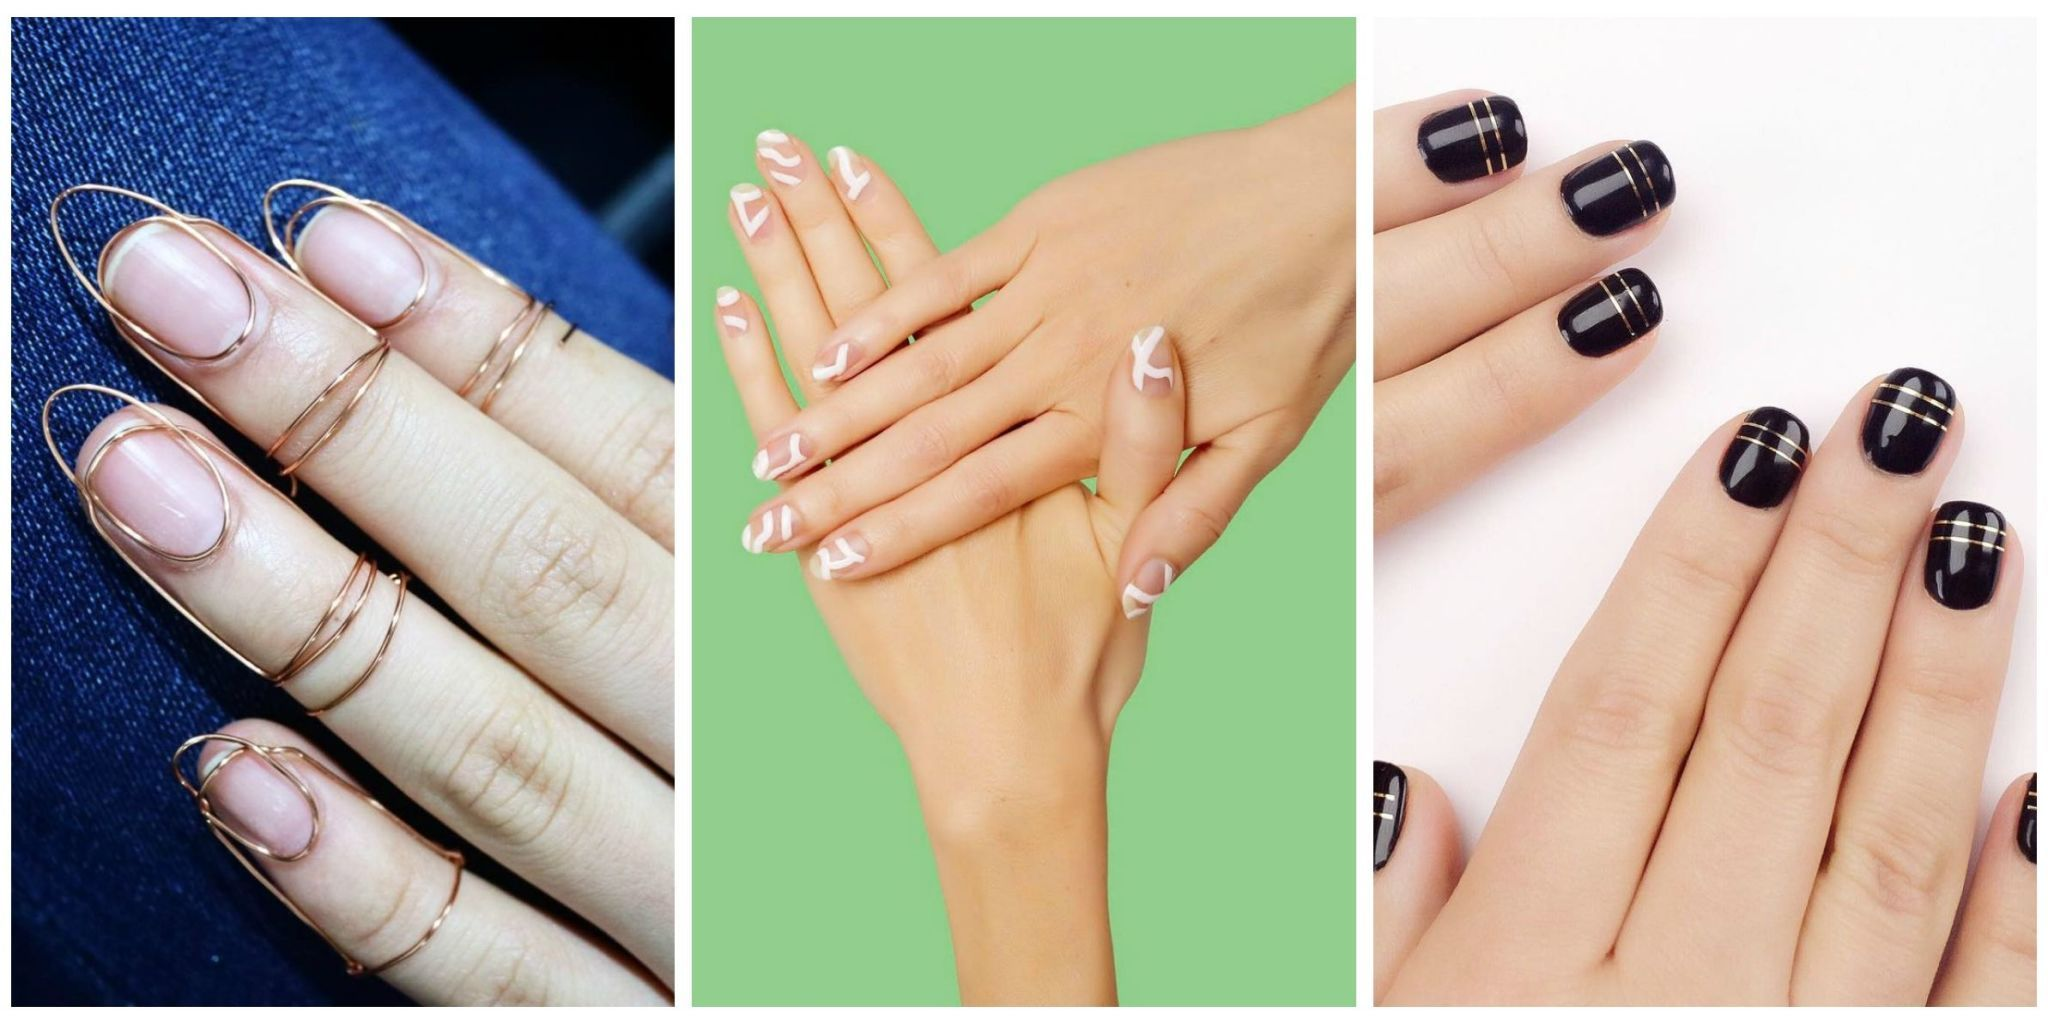 Don T Be Afraid To Step Out Of Your Nail Design Fort Zone Manicures Are Only Temporary After All